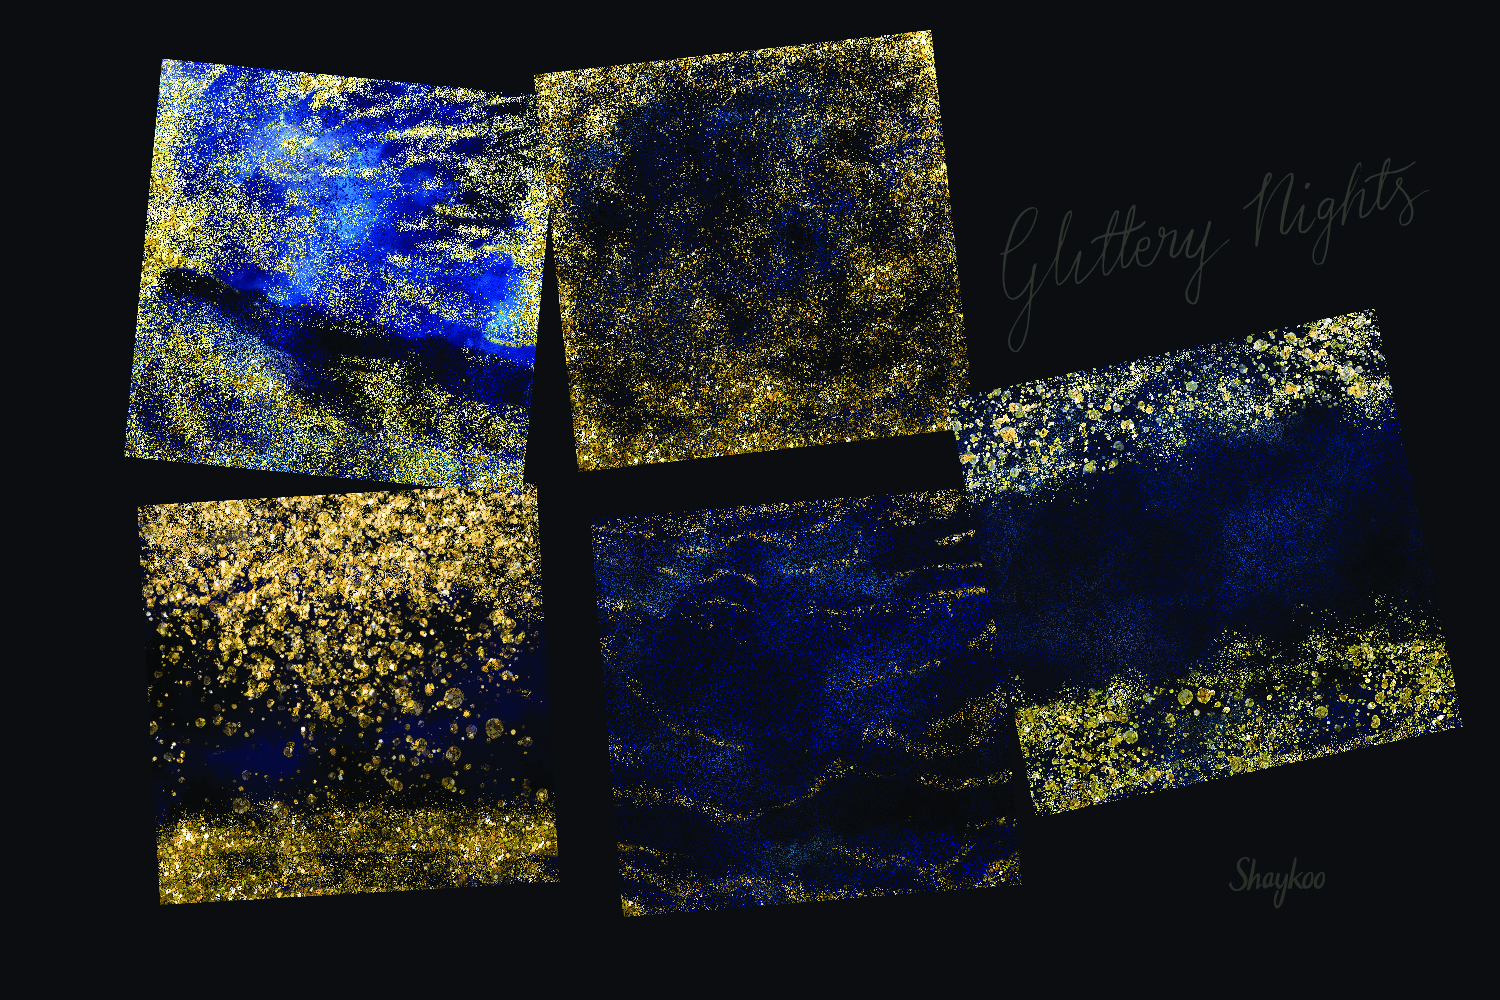 Starry Nights Digital Paper, Gold Glitter Background, Dark example image 2